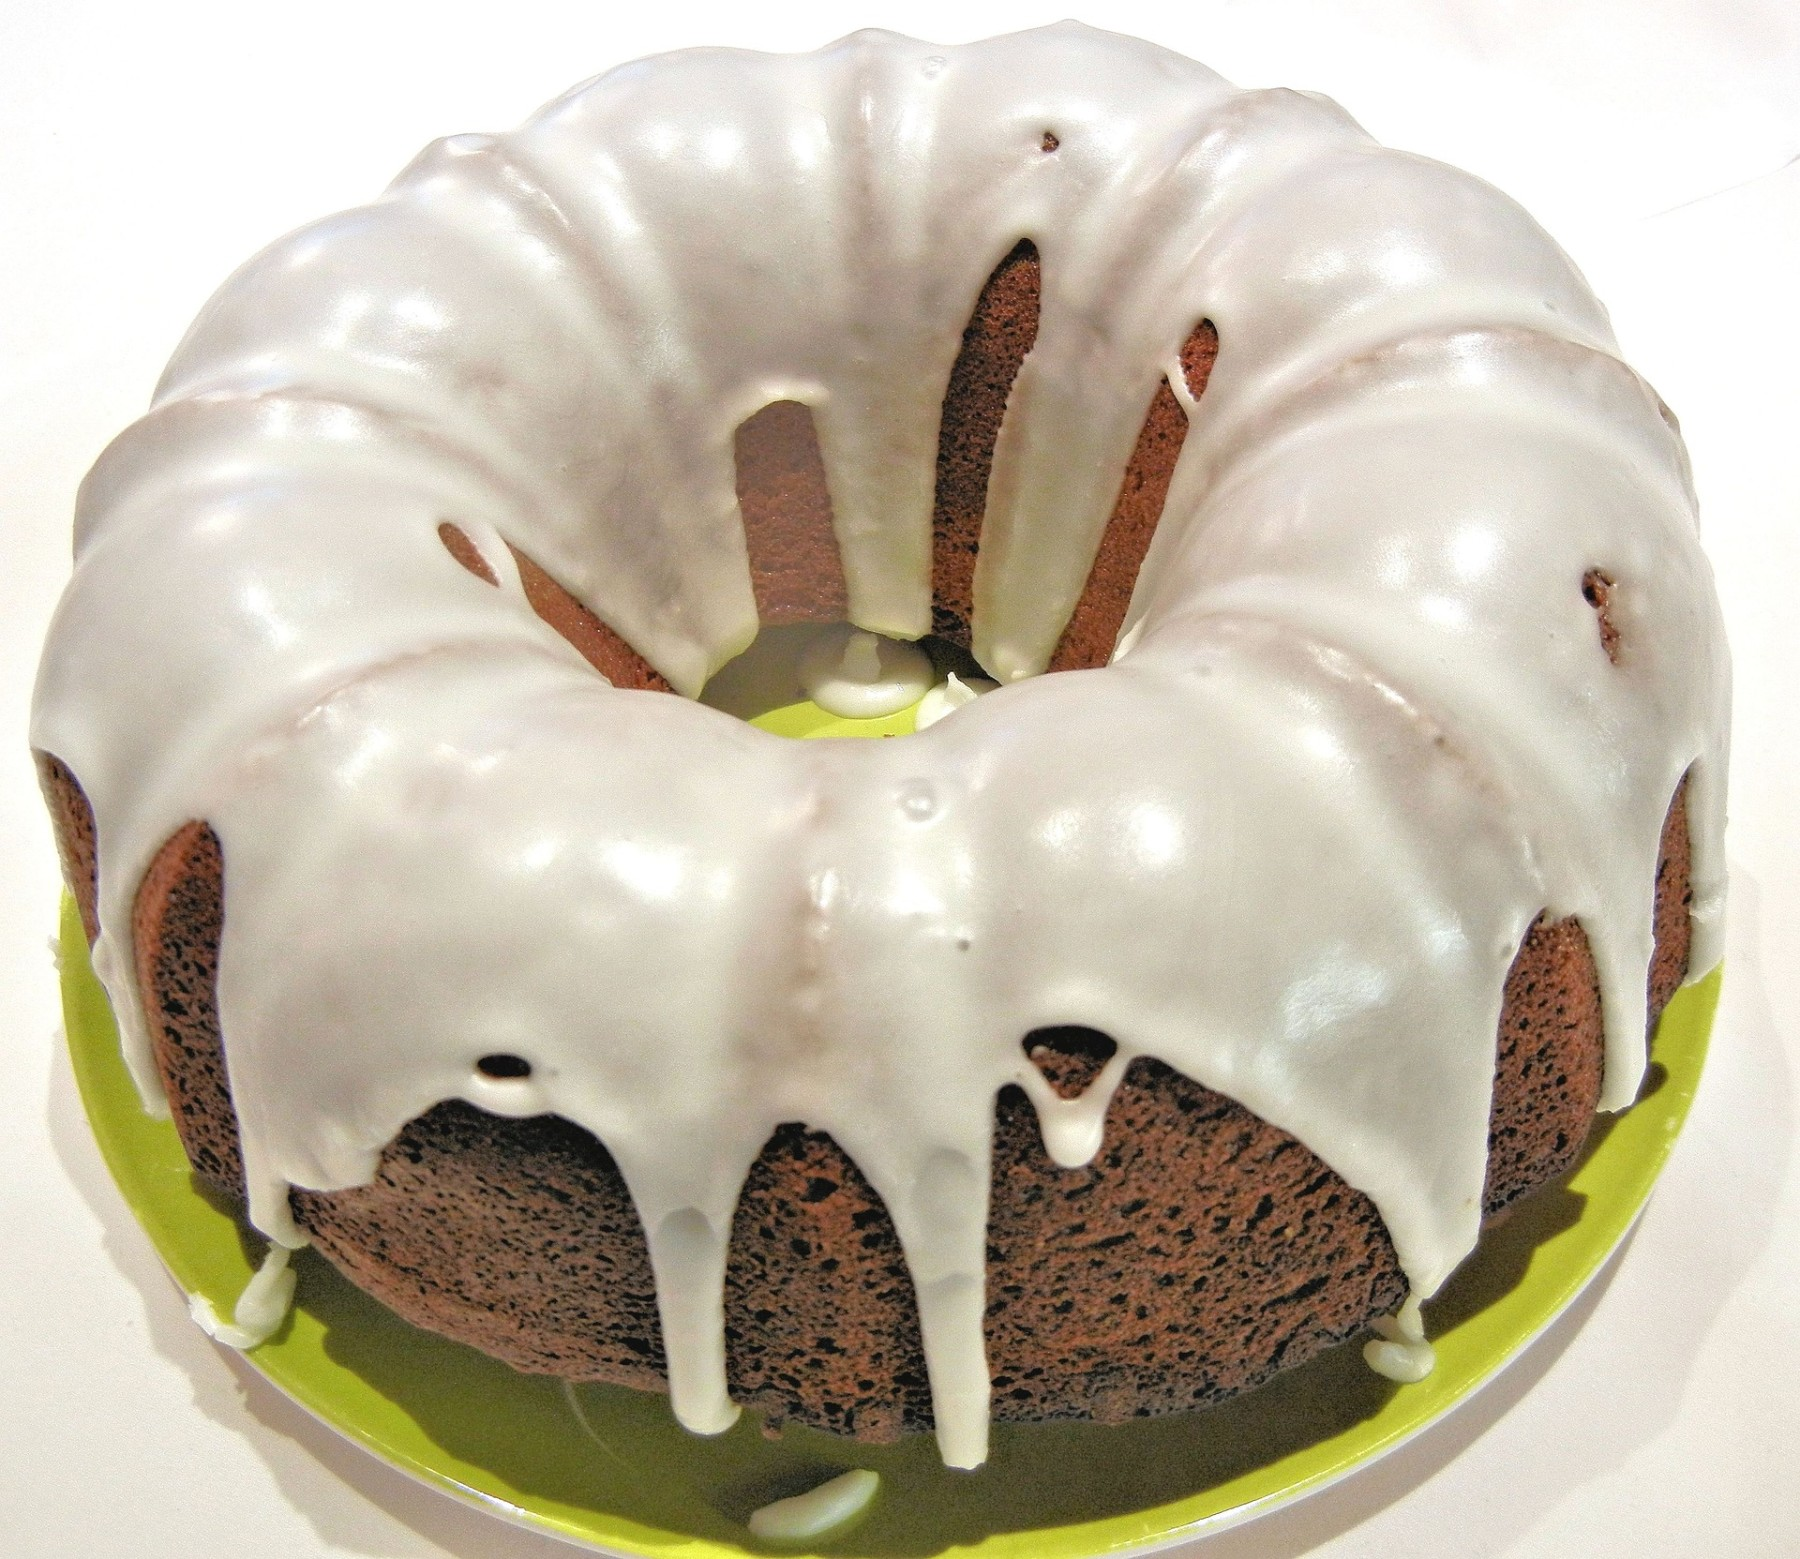 chocolate-bundt-cake-627997_1920